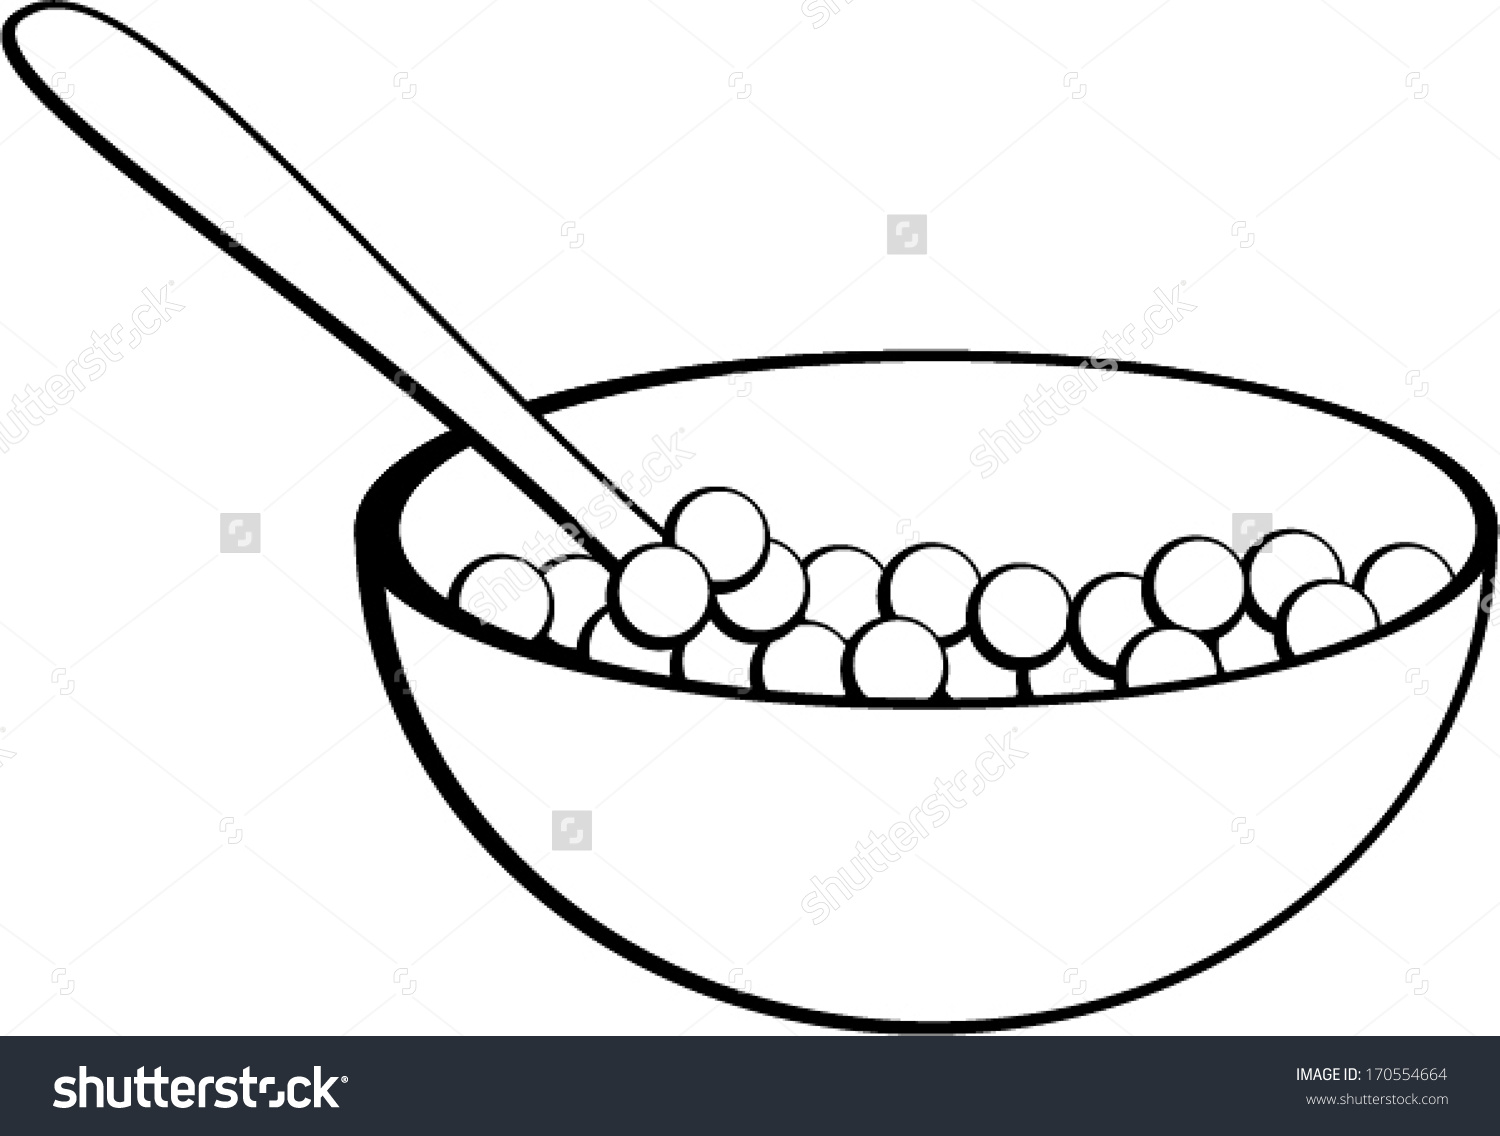 collection of bowl. Cereal clipart black and white